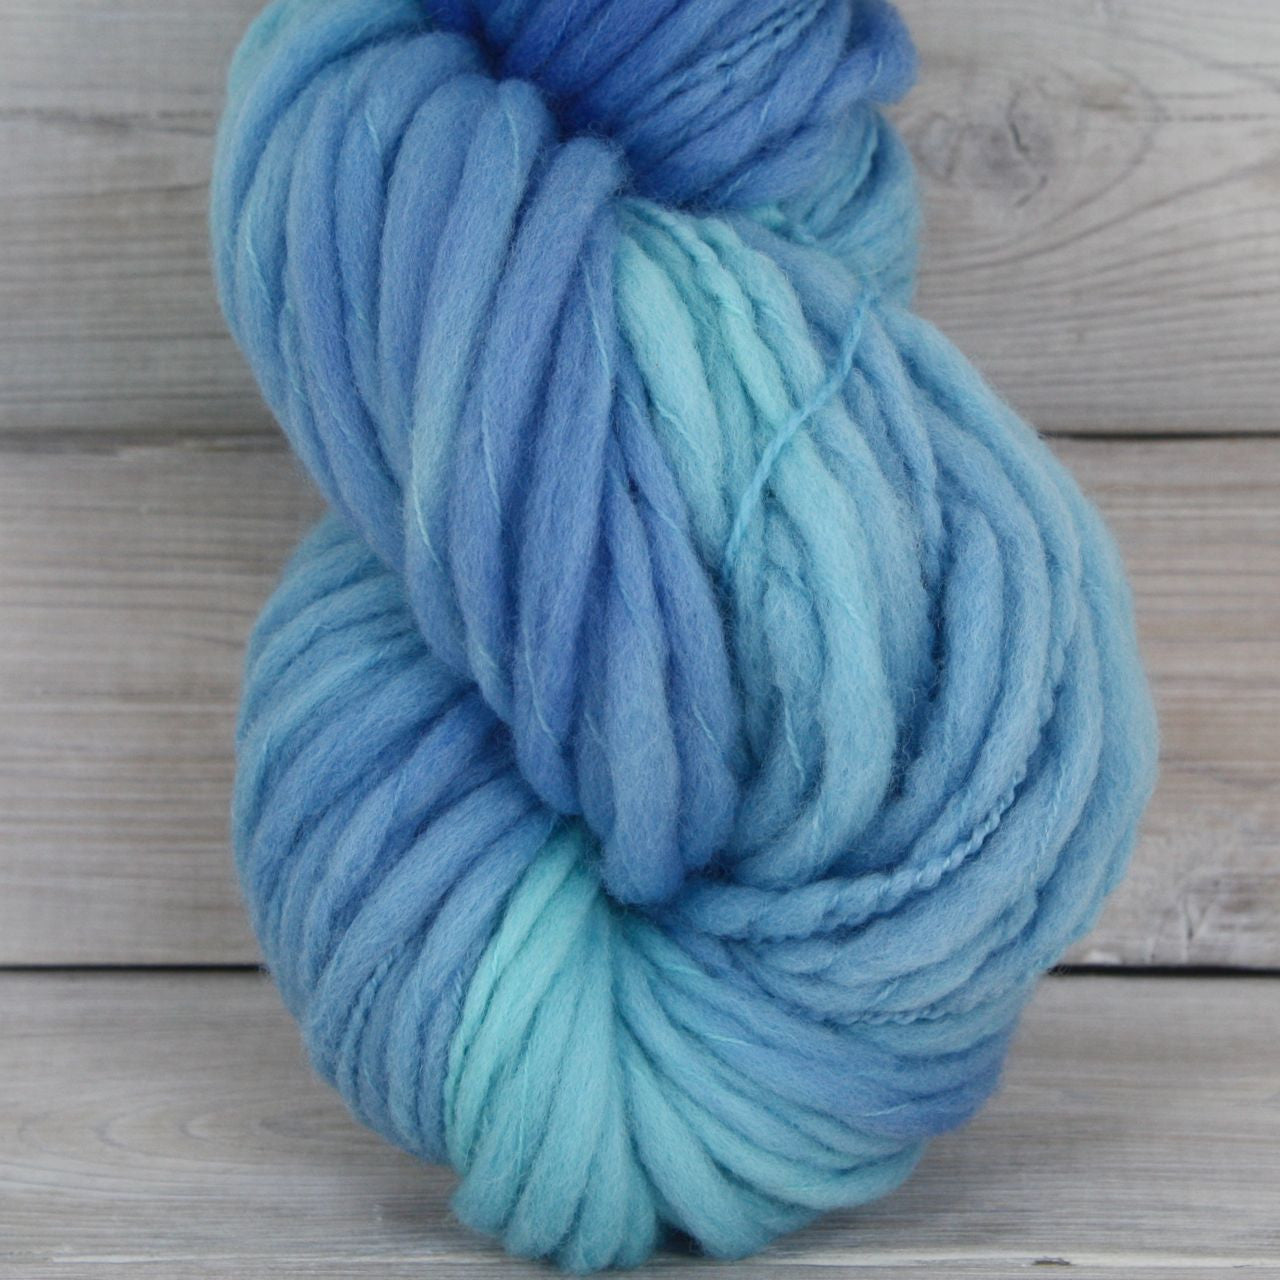 Titan Yarn | Colorway: Boca Chica